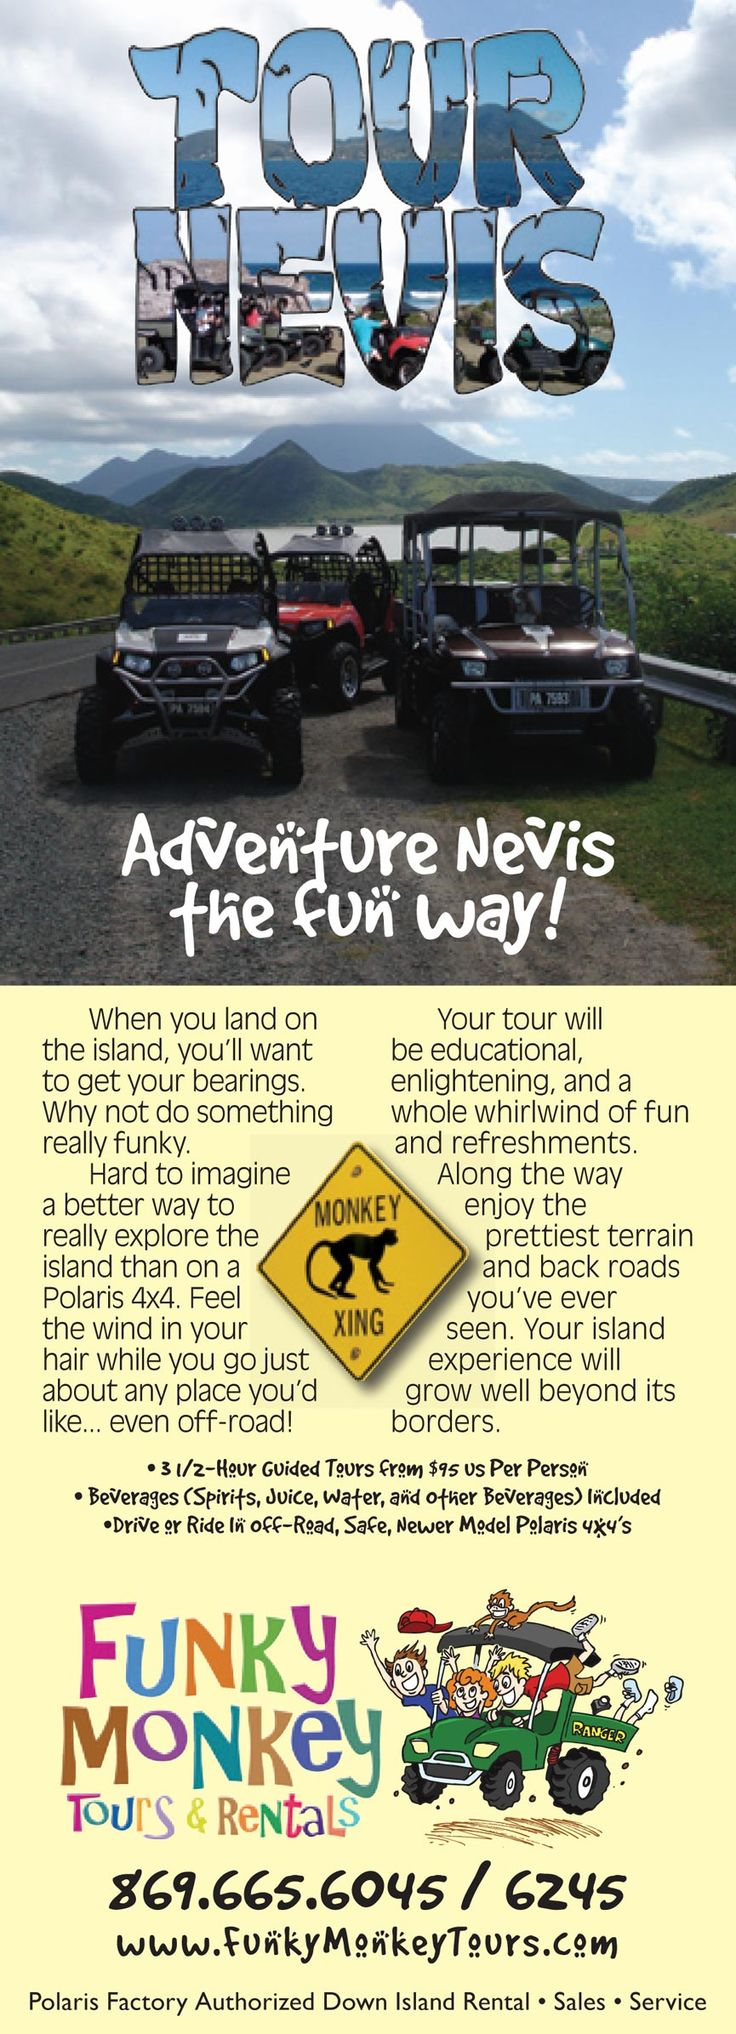 Nevis Island 4x4, ATV, Jet Ski, and Scooter Tours and Rentals | Funky Monkey Tours